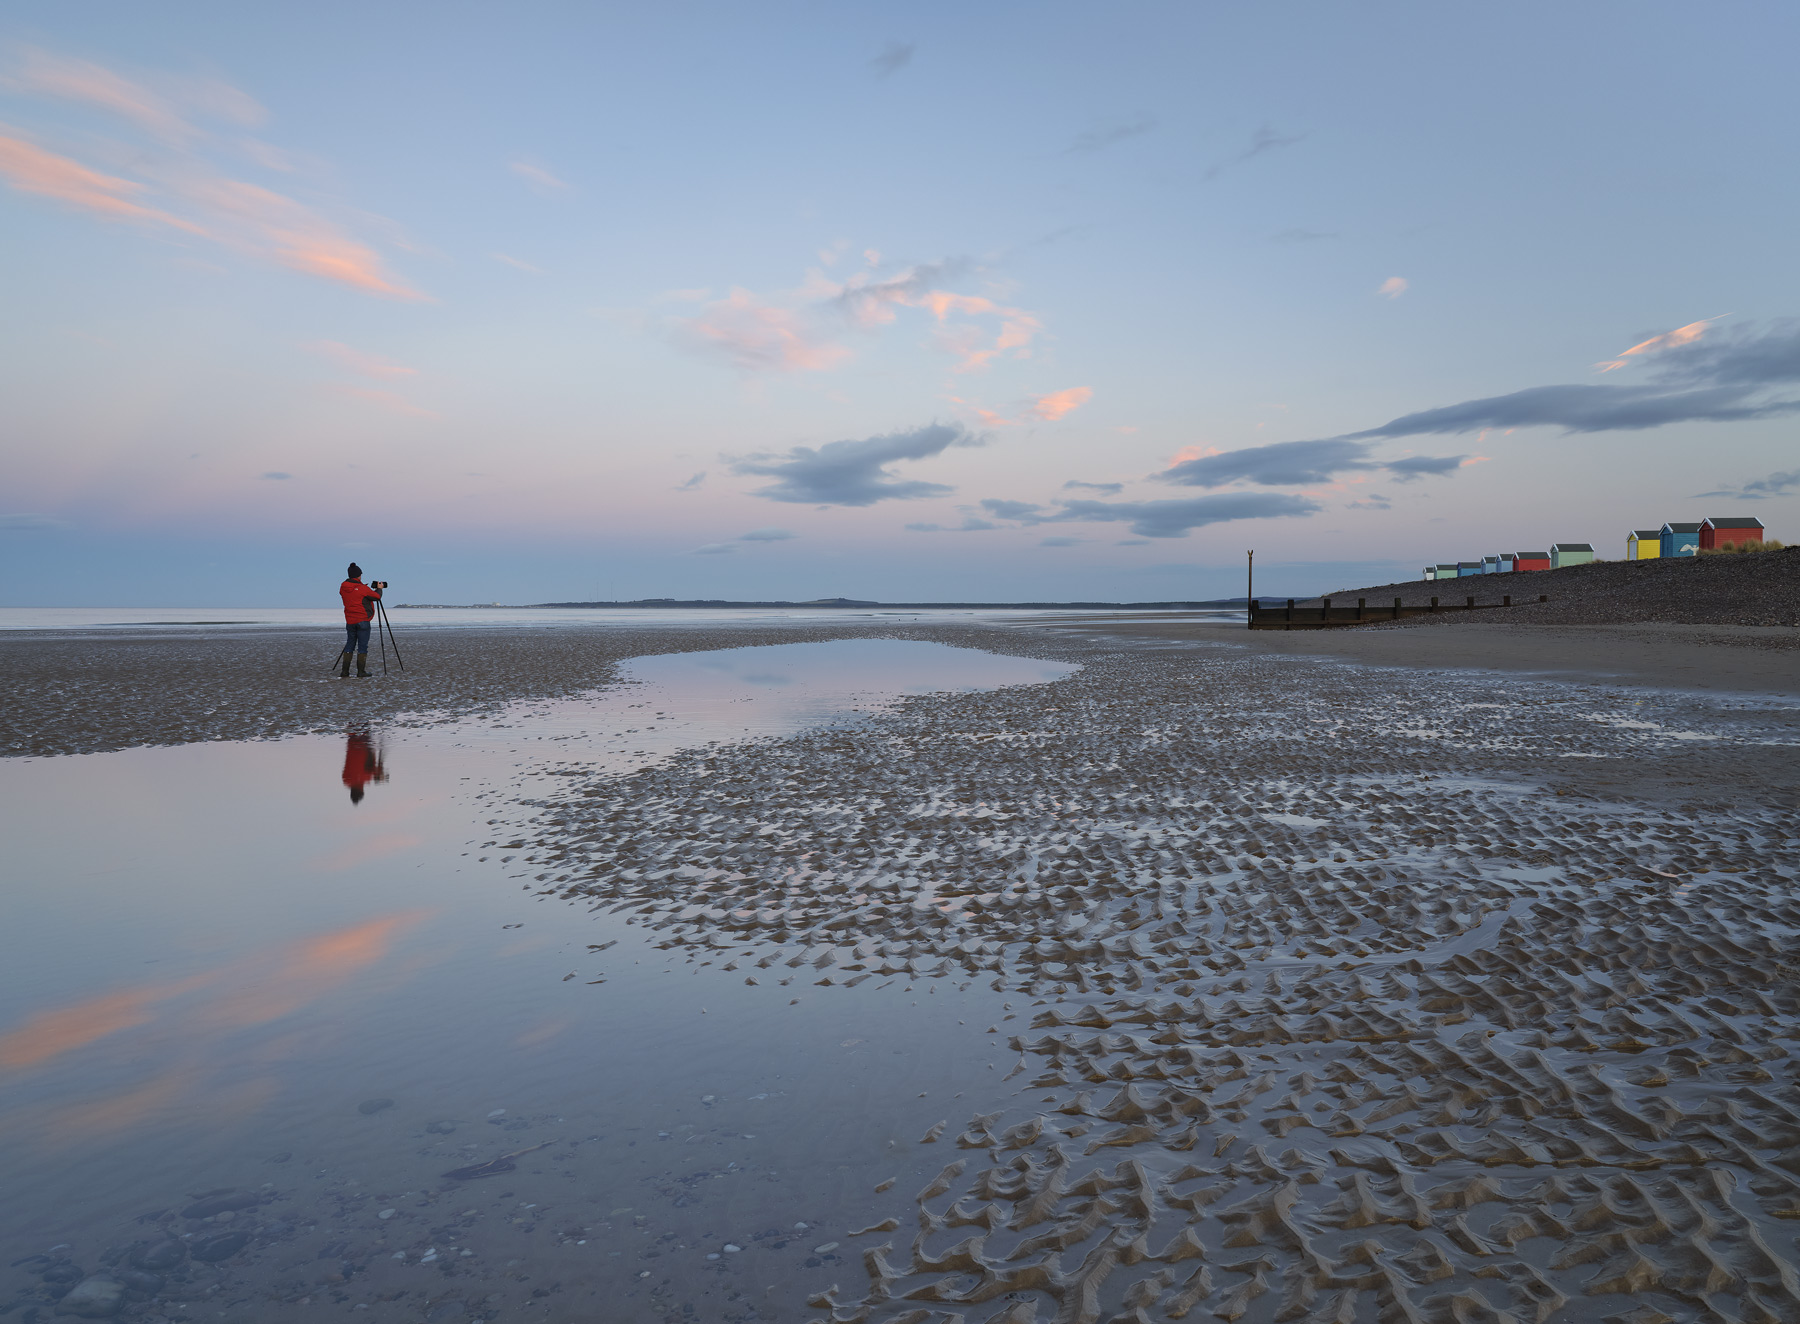 Jim'll Fix It, Findhorn, Moray, Scotland, horizon, pink, Earth's shadow, alignment, beach, reflection, figure, red jacke, photo